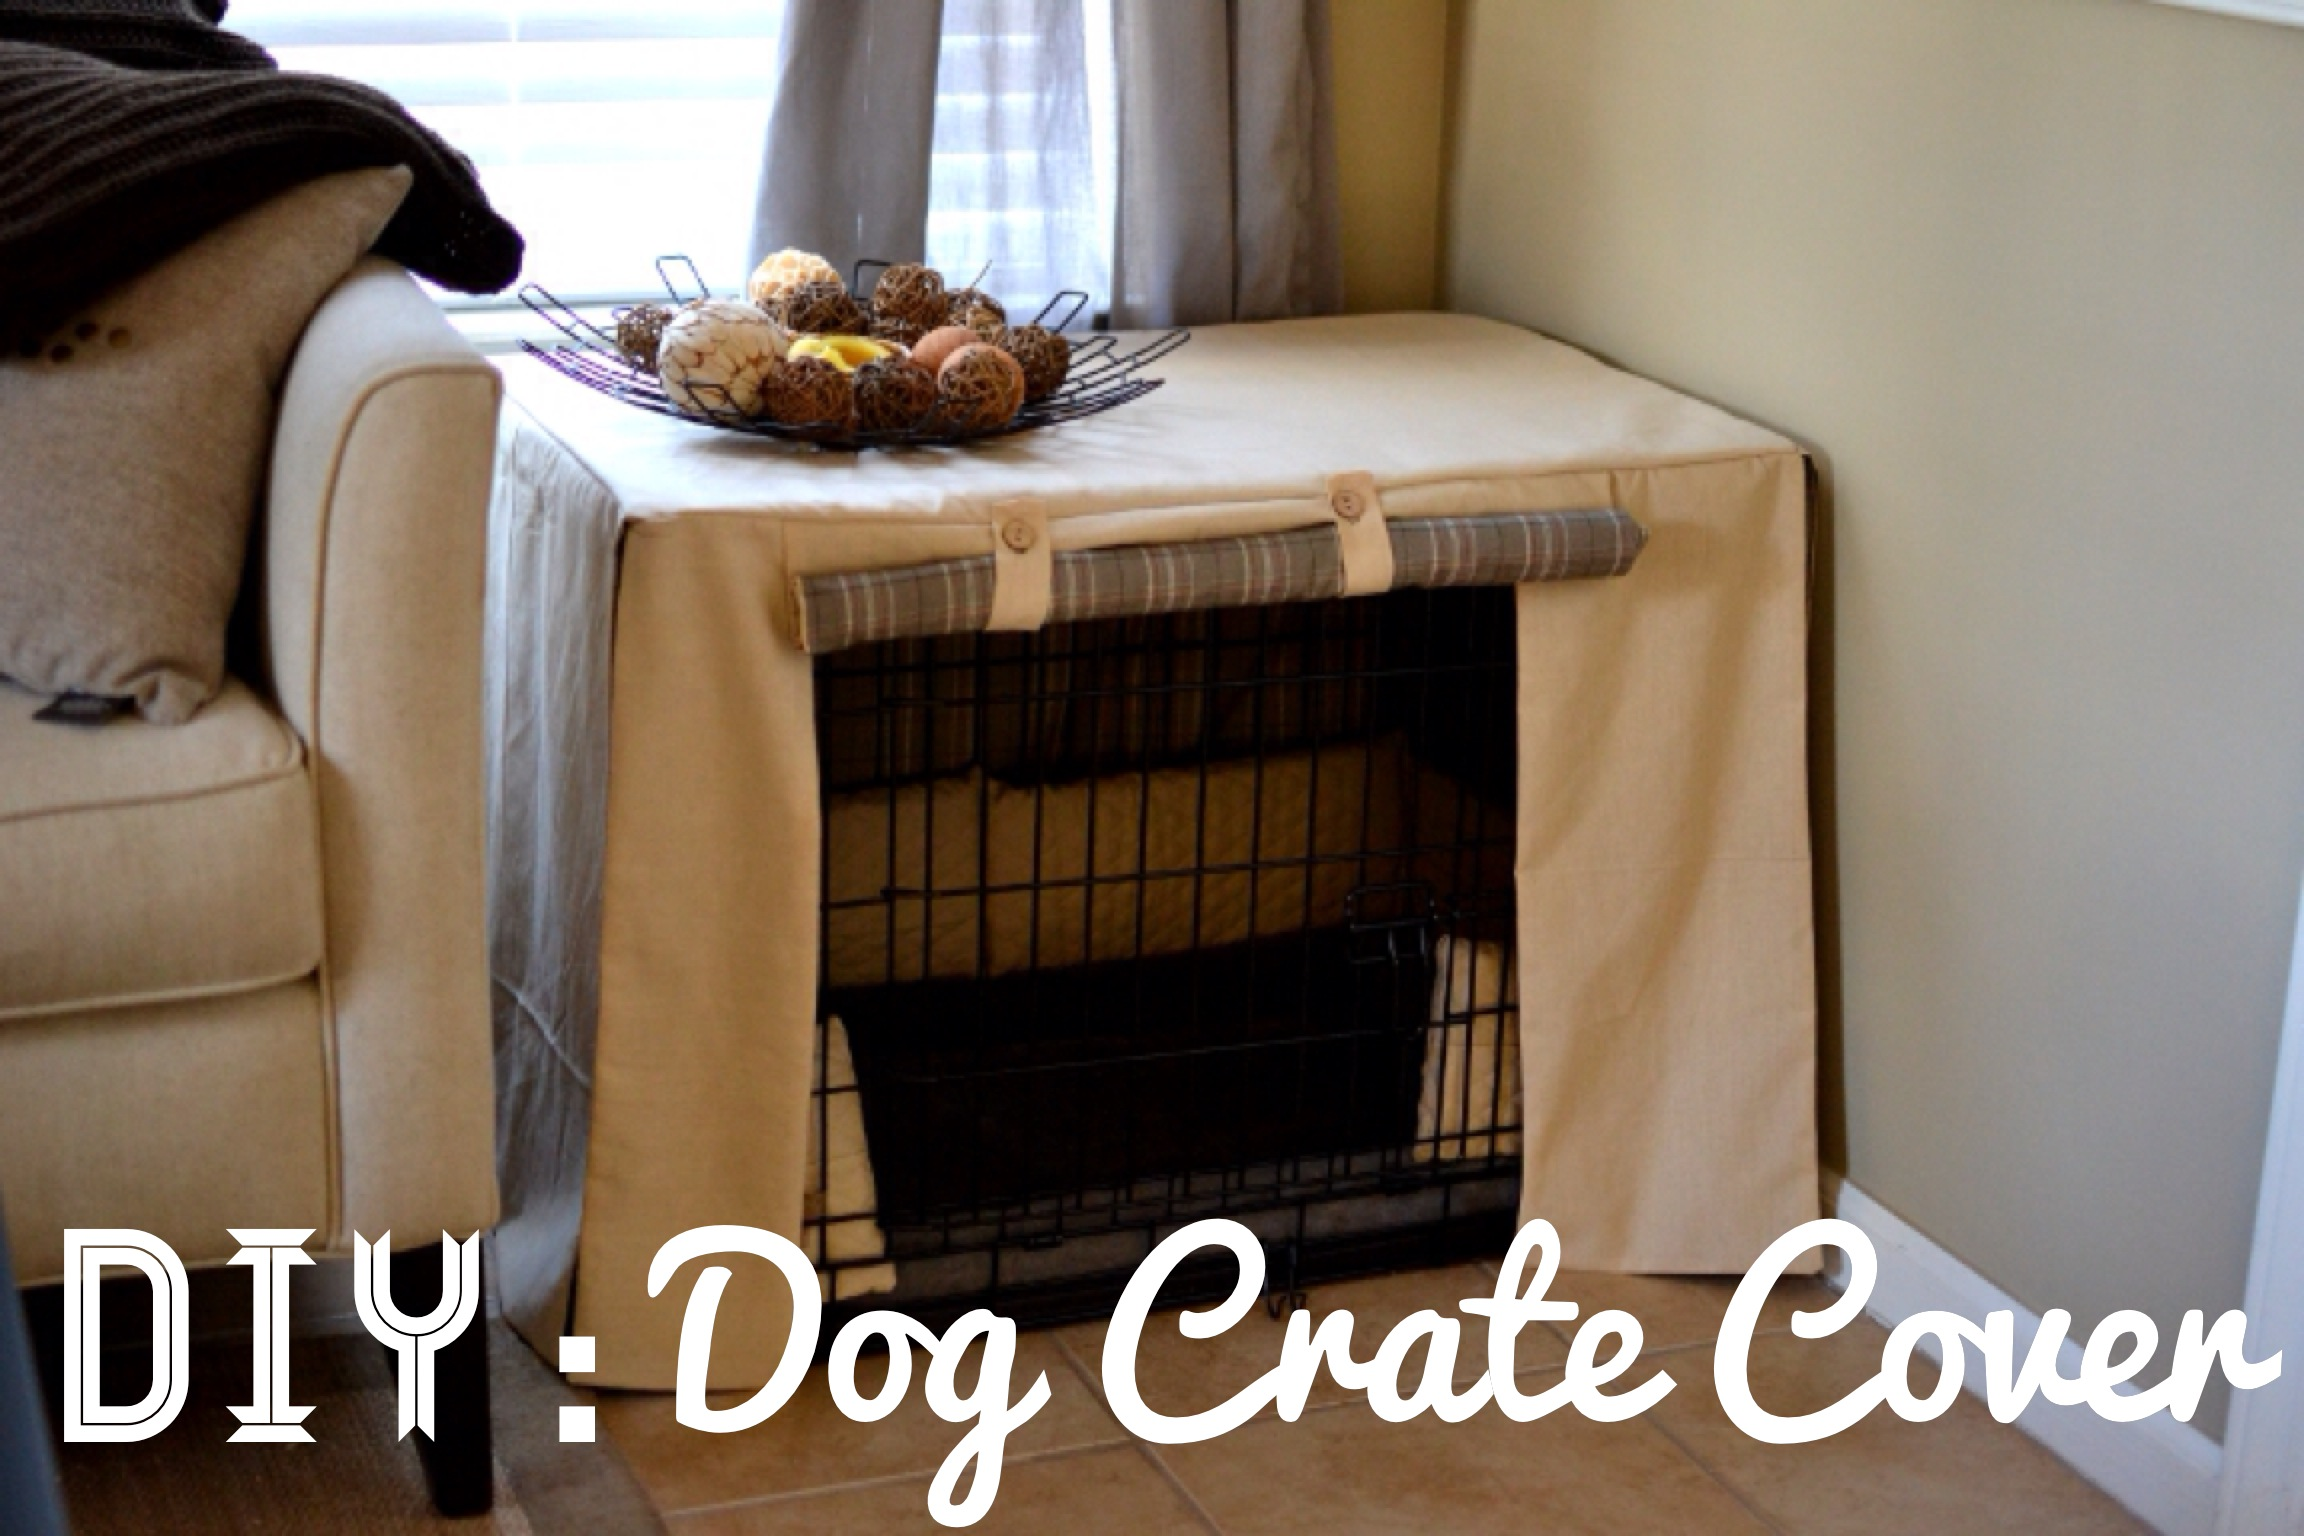 Relaxing Under Oaks Diy Dog Crate Cover Dog Crate Cover Under Oaks Dog Crate Covers 36 Inch Dog Crate Covers Nz bark post Dog Crate Covers